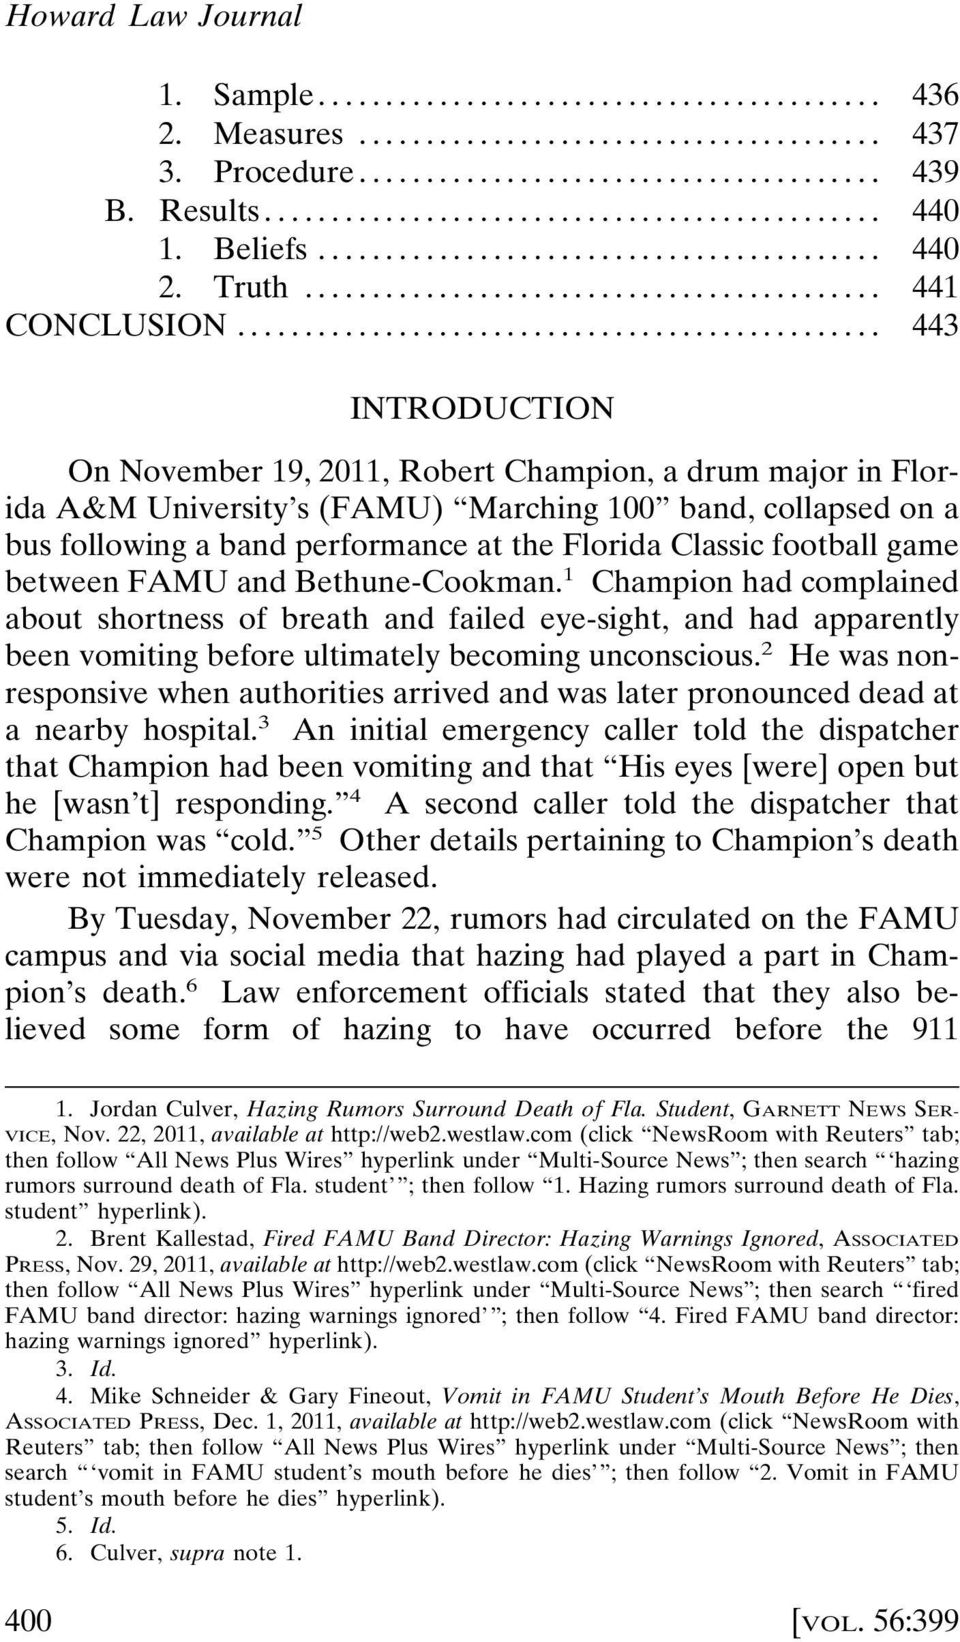 football game between FAMU and Bethune-Cookman. 1 Champion had complained about shortness of breath and failed eye-sight, and had apparently been vomiting before ultimately becoming unconscious.